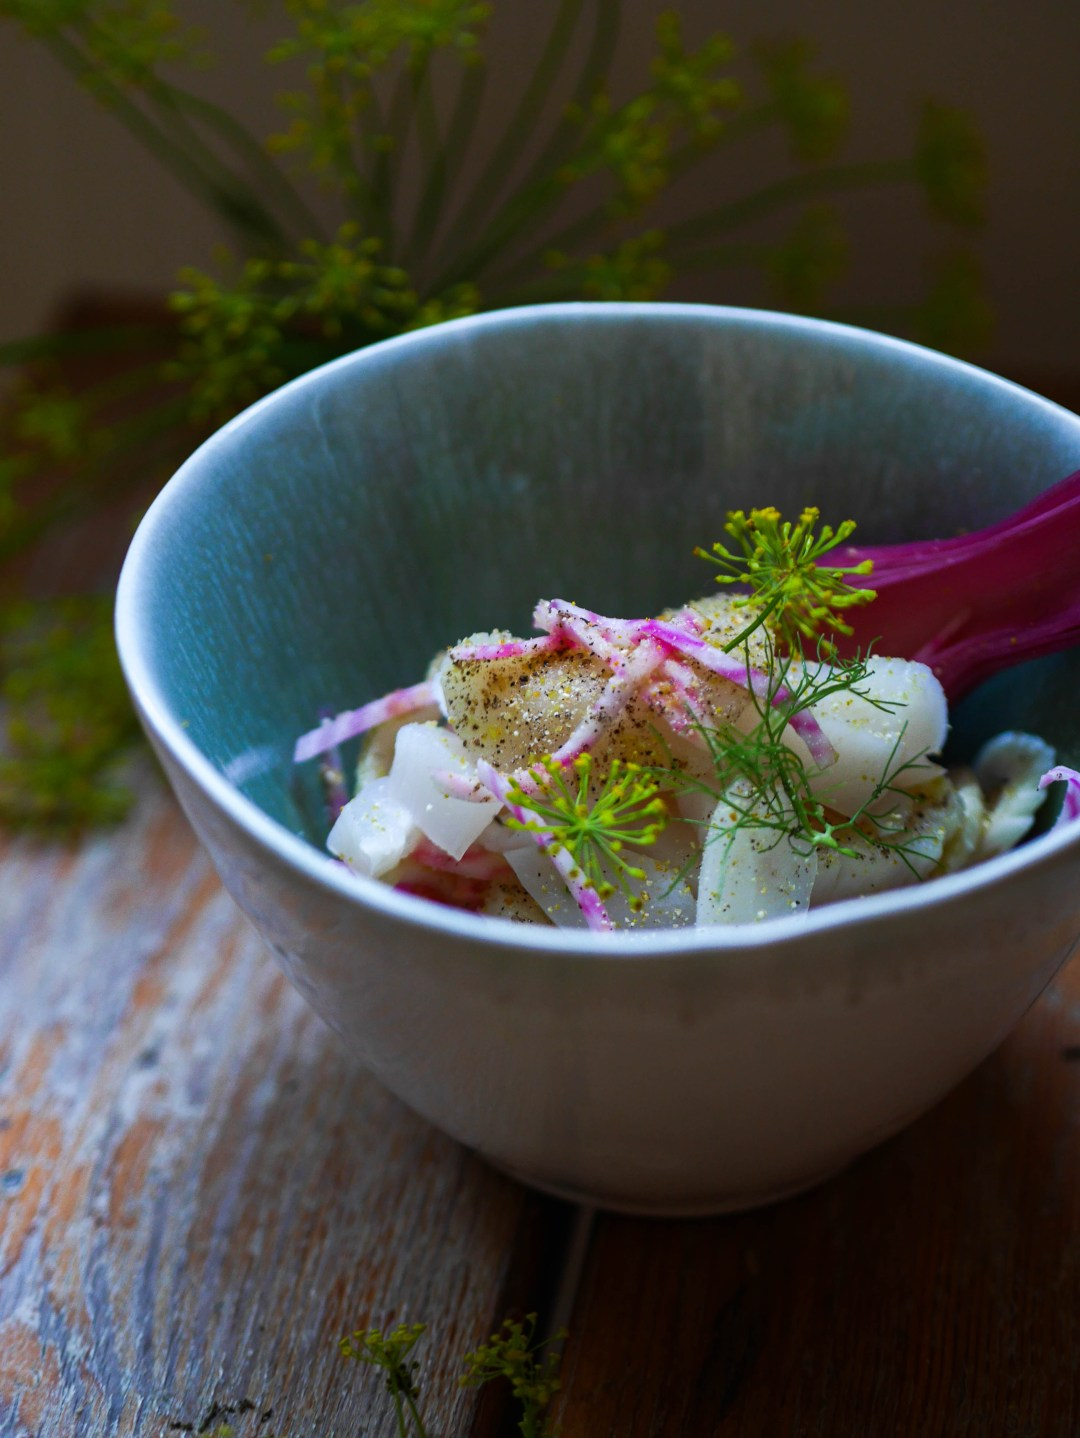 food-blog-culinaire-woodmoodfood-recette-facile-ceviche-saint-jacques-fleurs-aneth-1